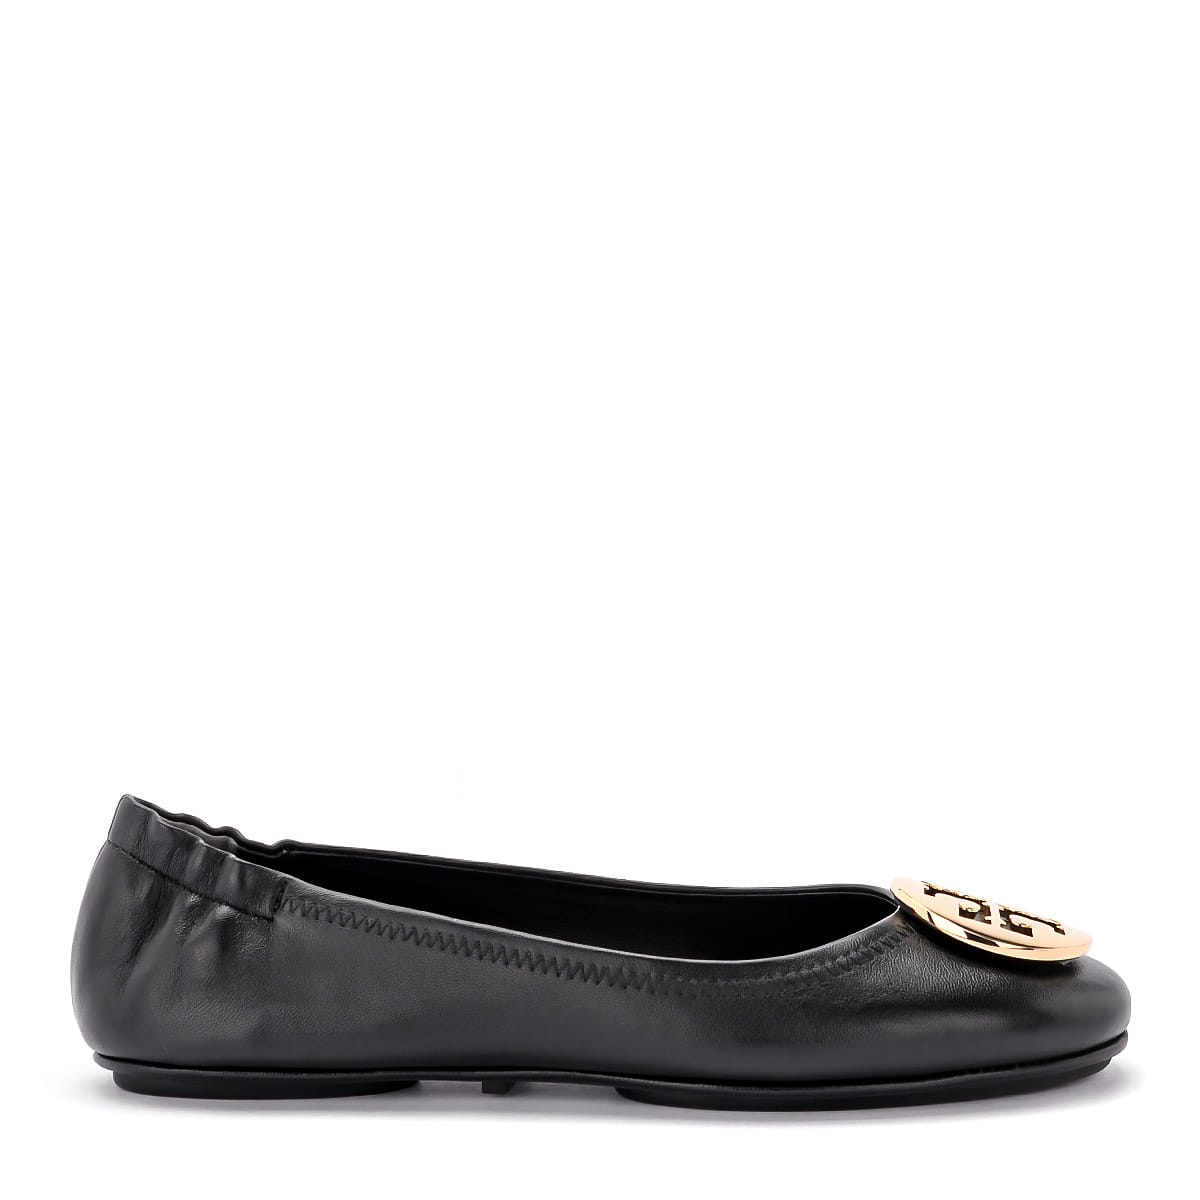 Tory Burch Minnie Travel Black And Gold Nappa Flat Shoes.